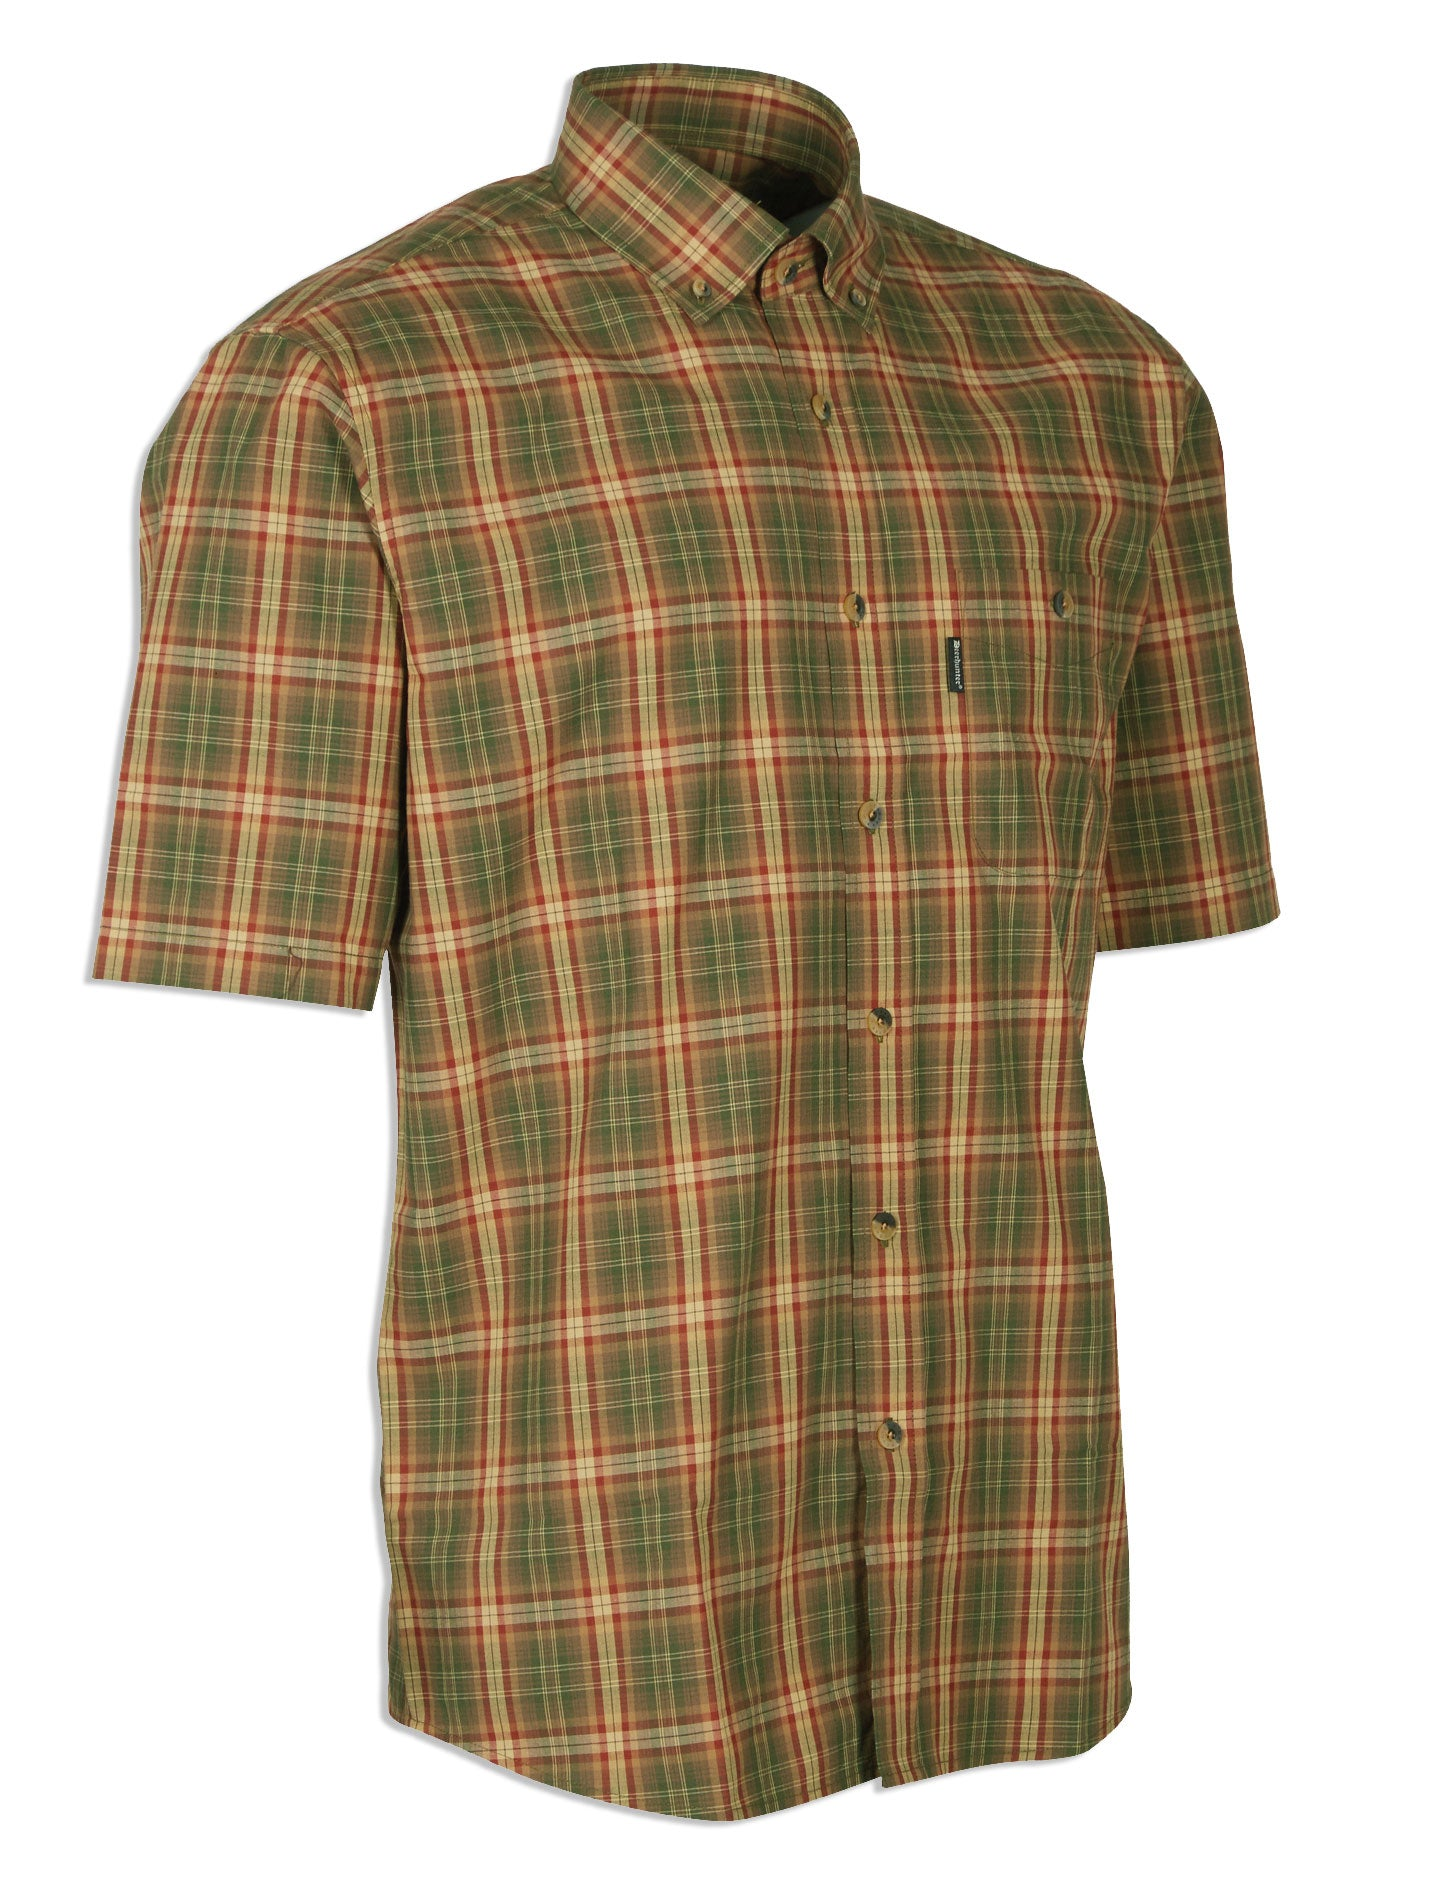 Deerhunter mitchell short sleeve shirt in red green check